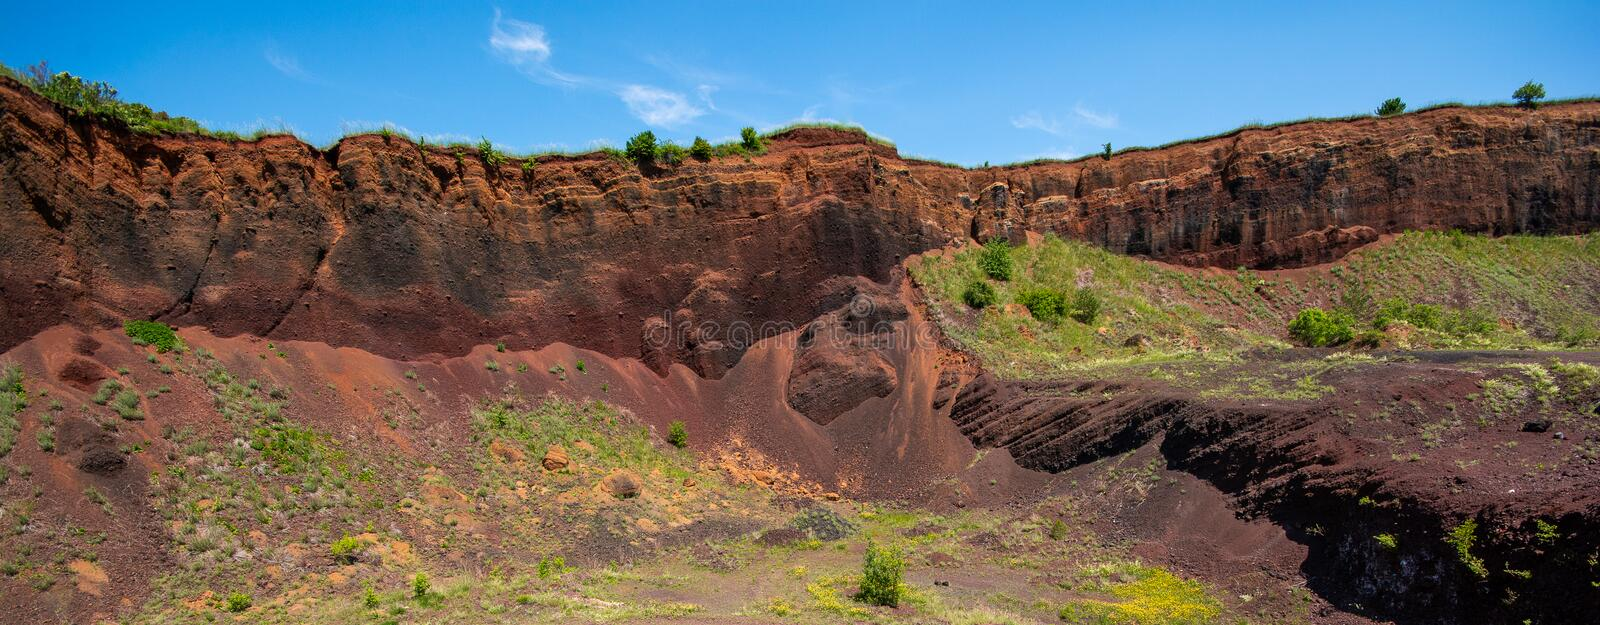 View over Racos extinct volcano in Brasov county Romania royalty free stock photo